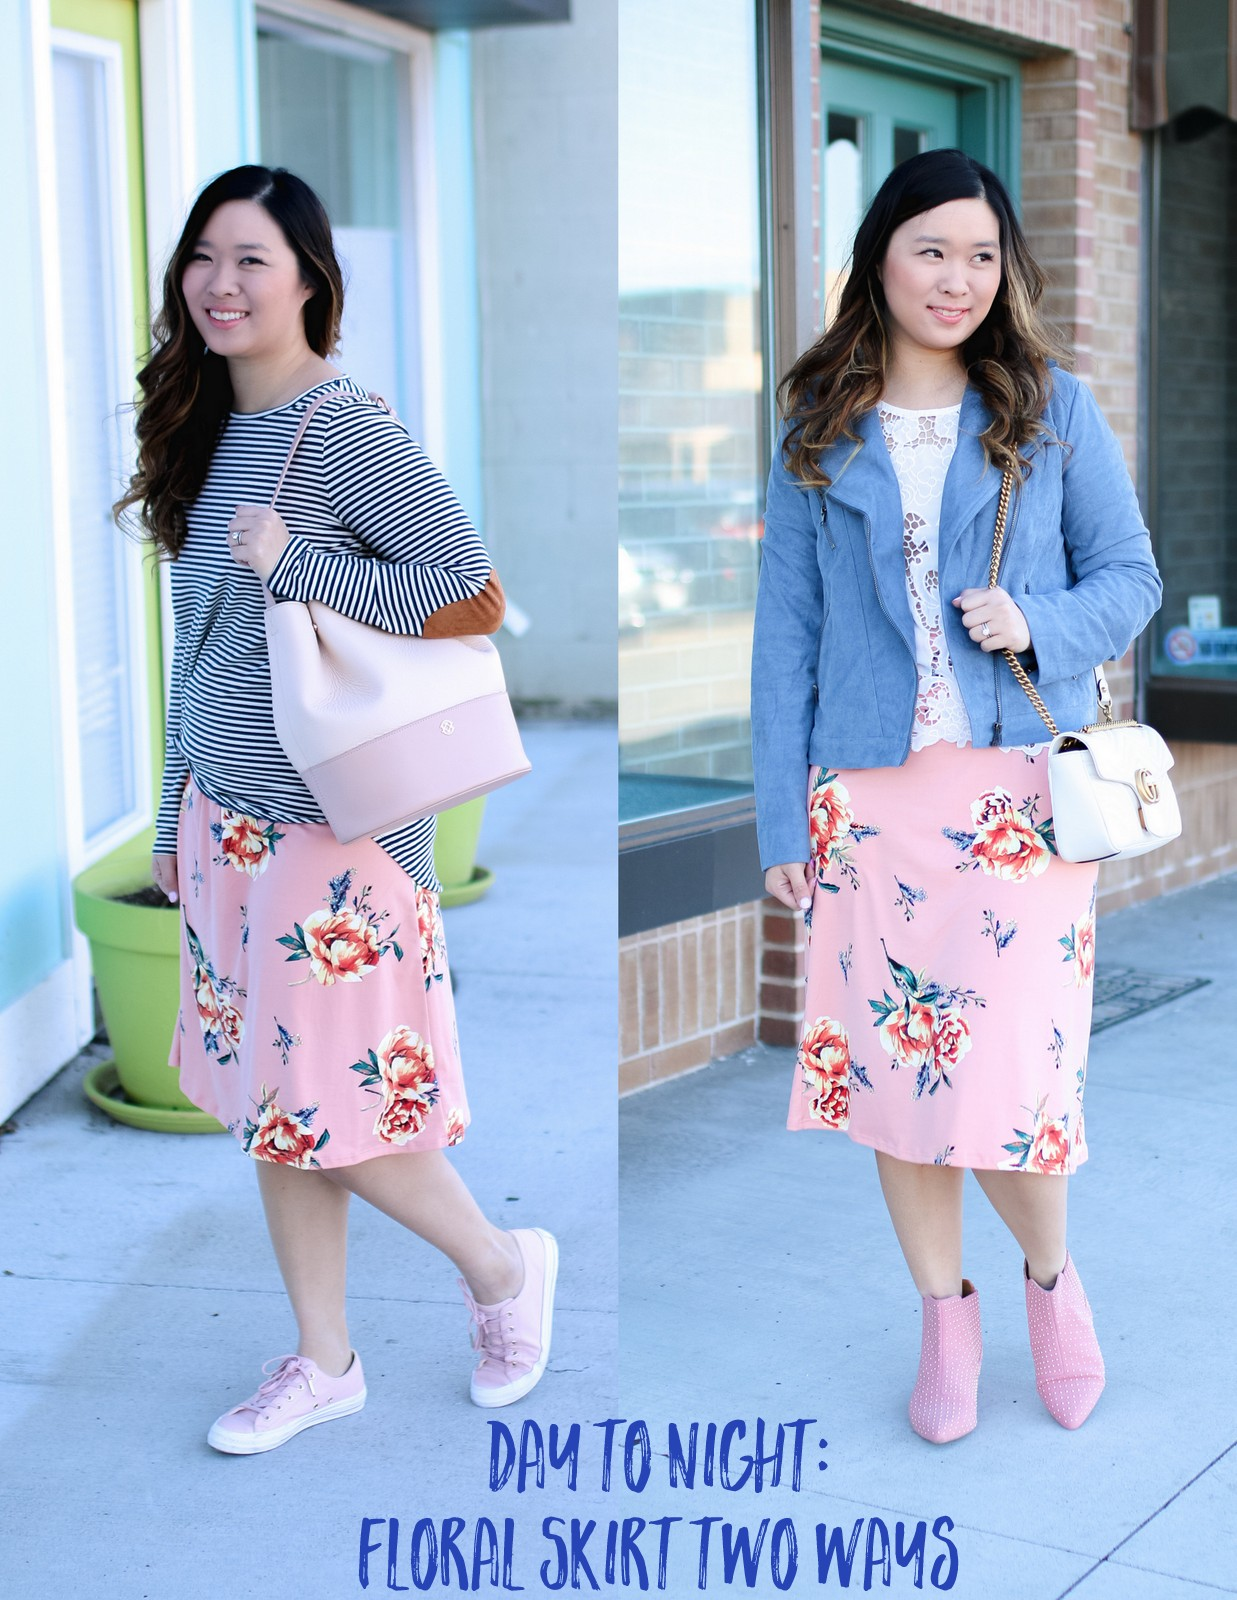 Day to Night in a floral skirt